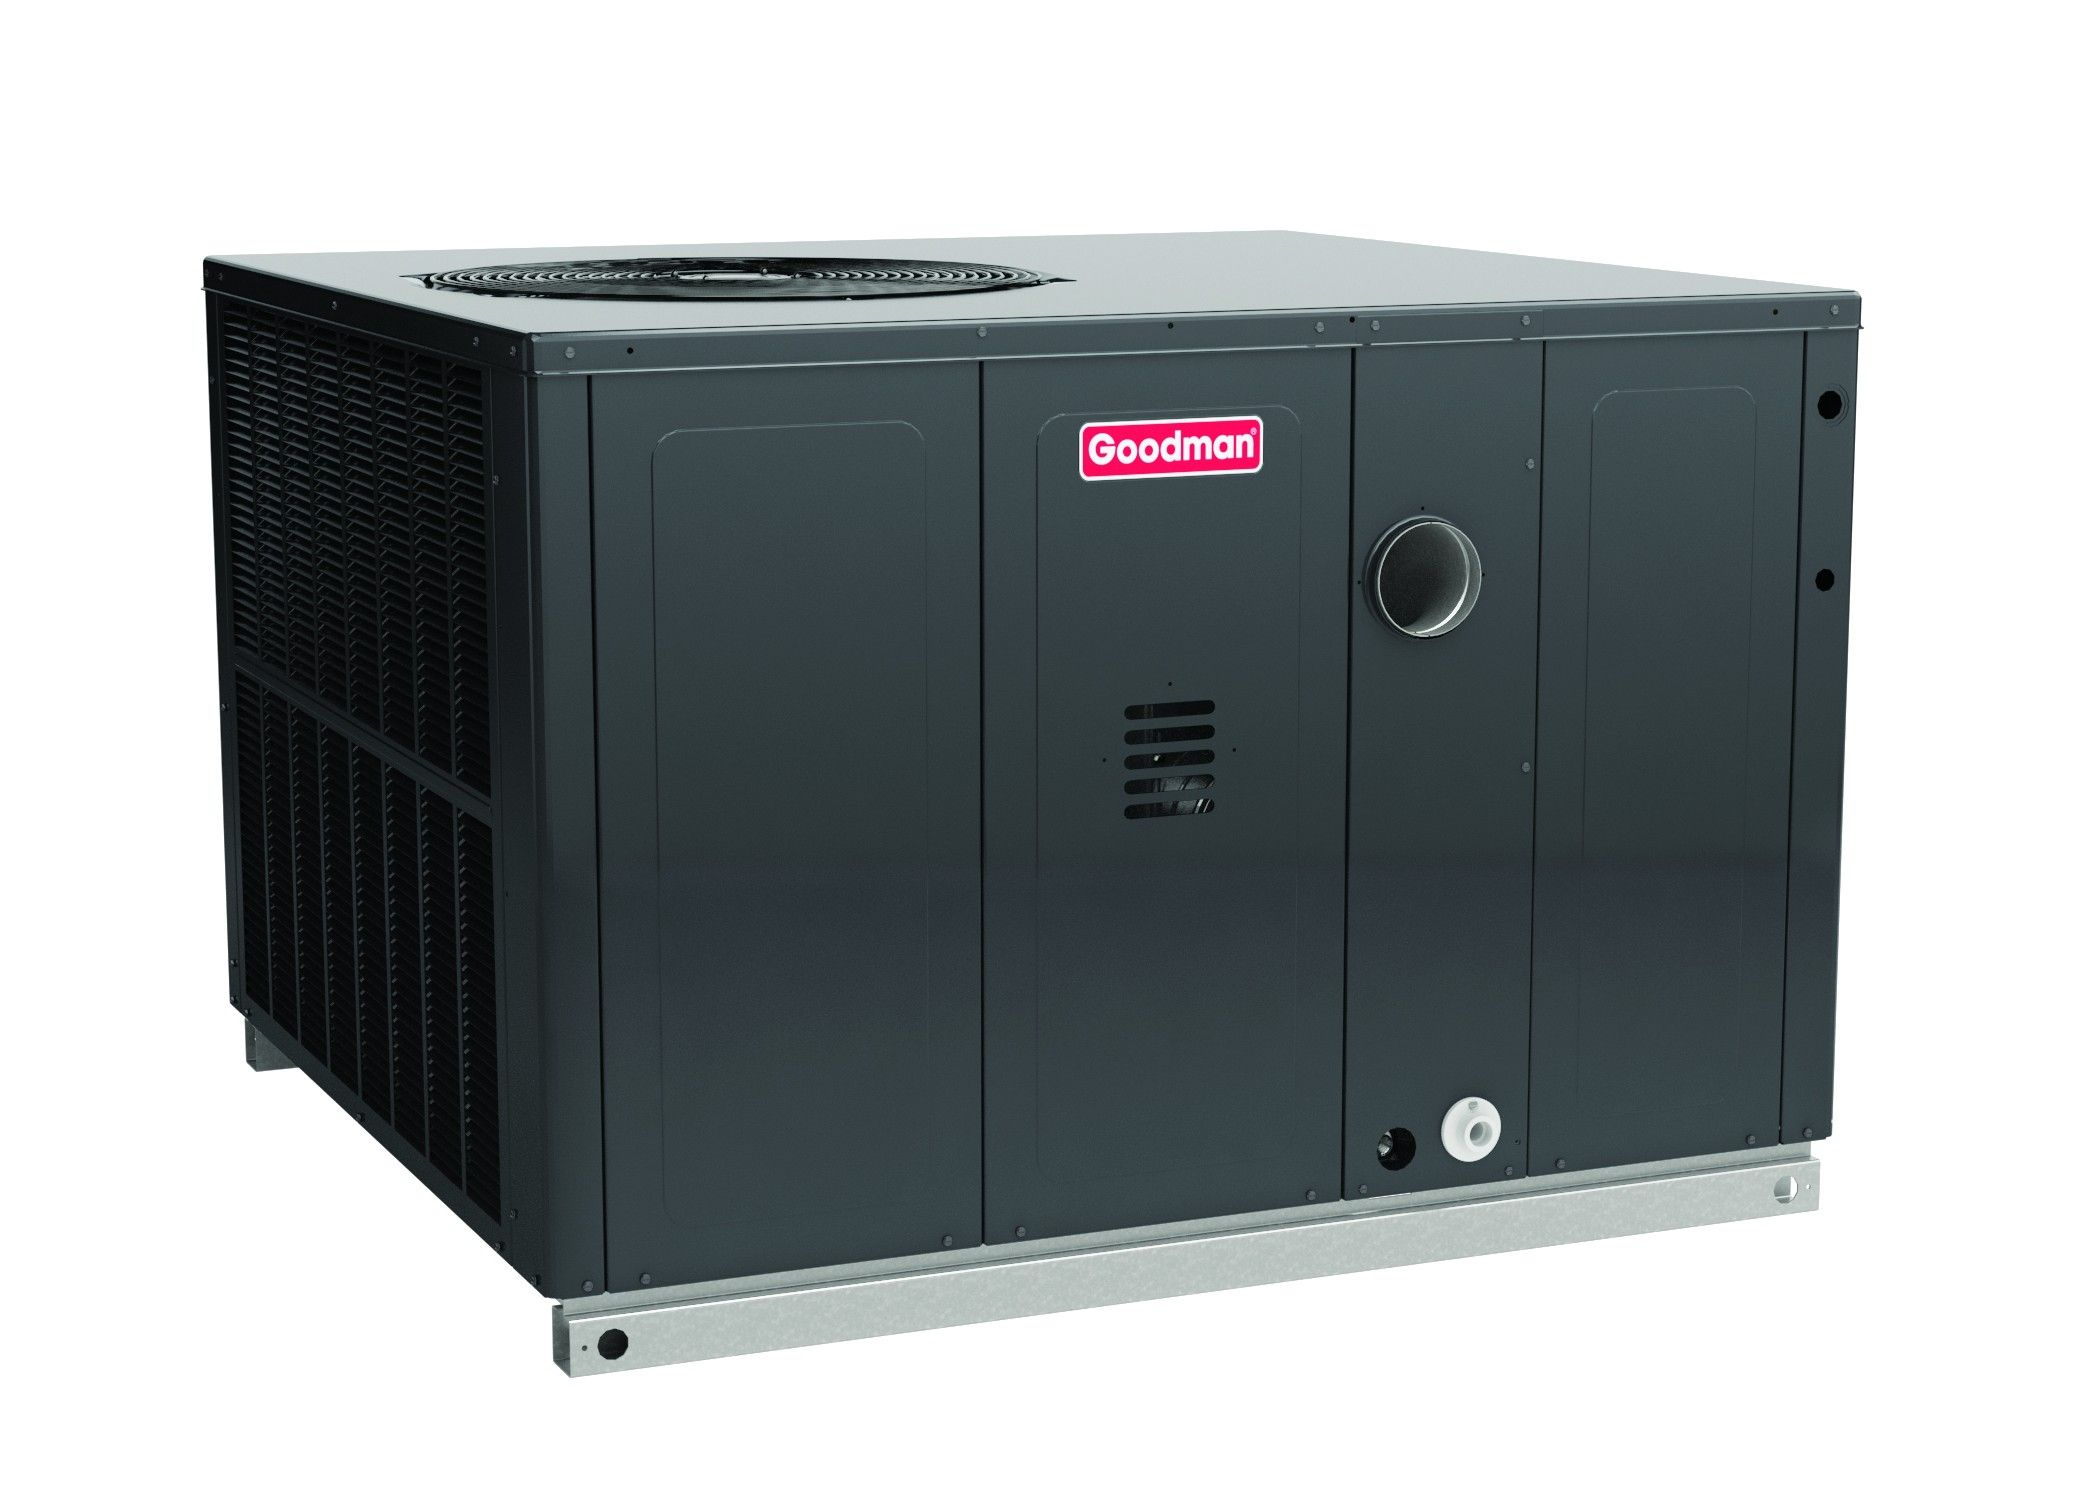 Goodman 4.0 Ton 14 SEER 80K BTU Packge Unit with Gas Heat - GPG1448080M41A